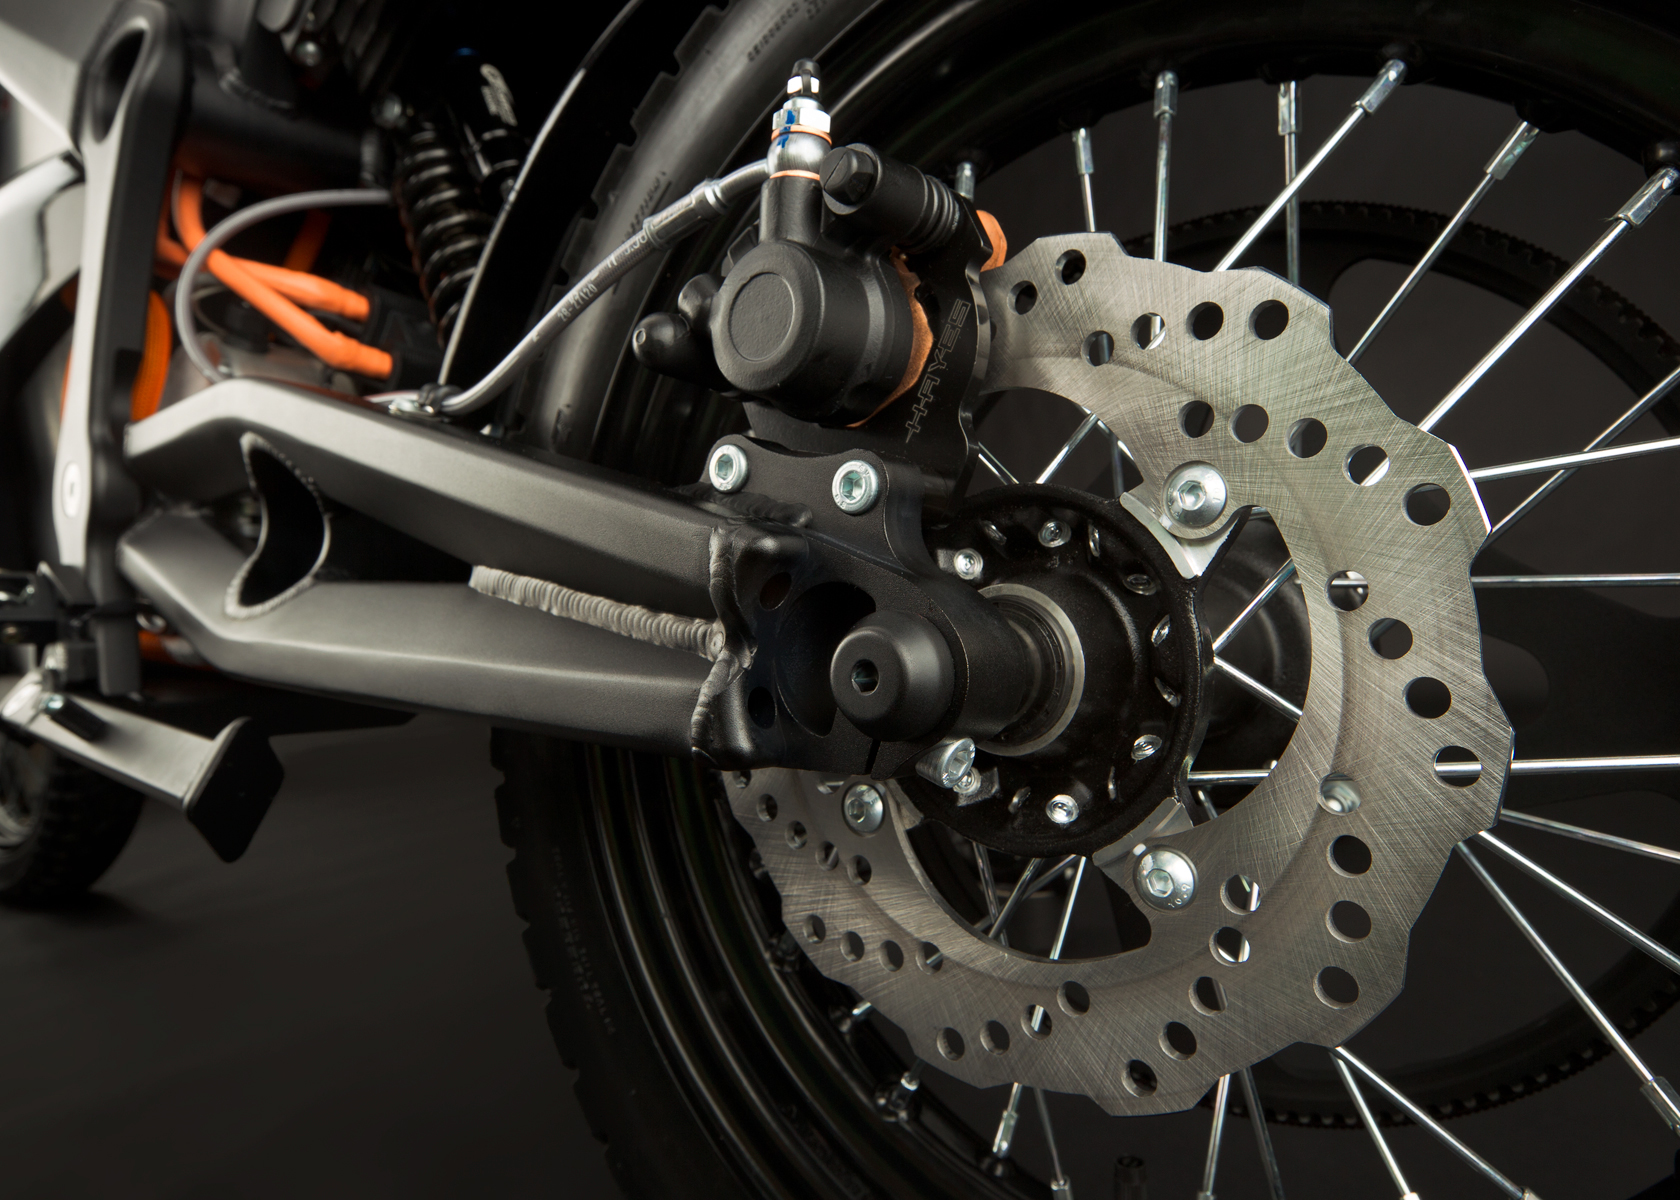 2012 Zero DS Electric Motorcycle: Swingarm